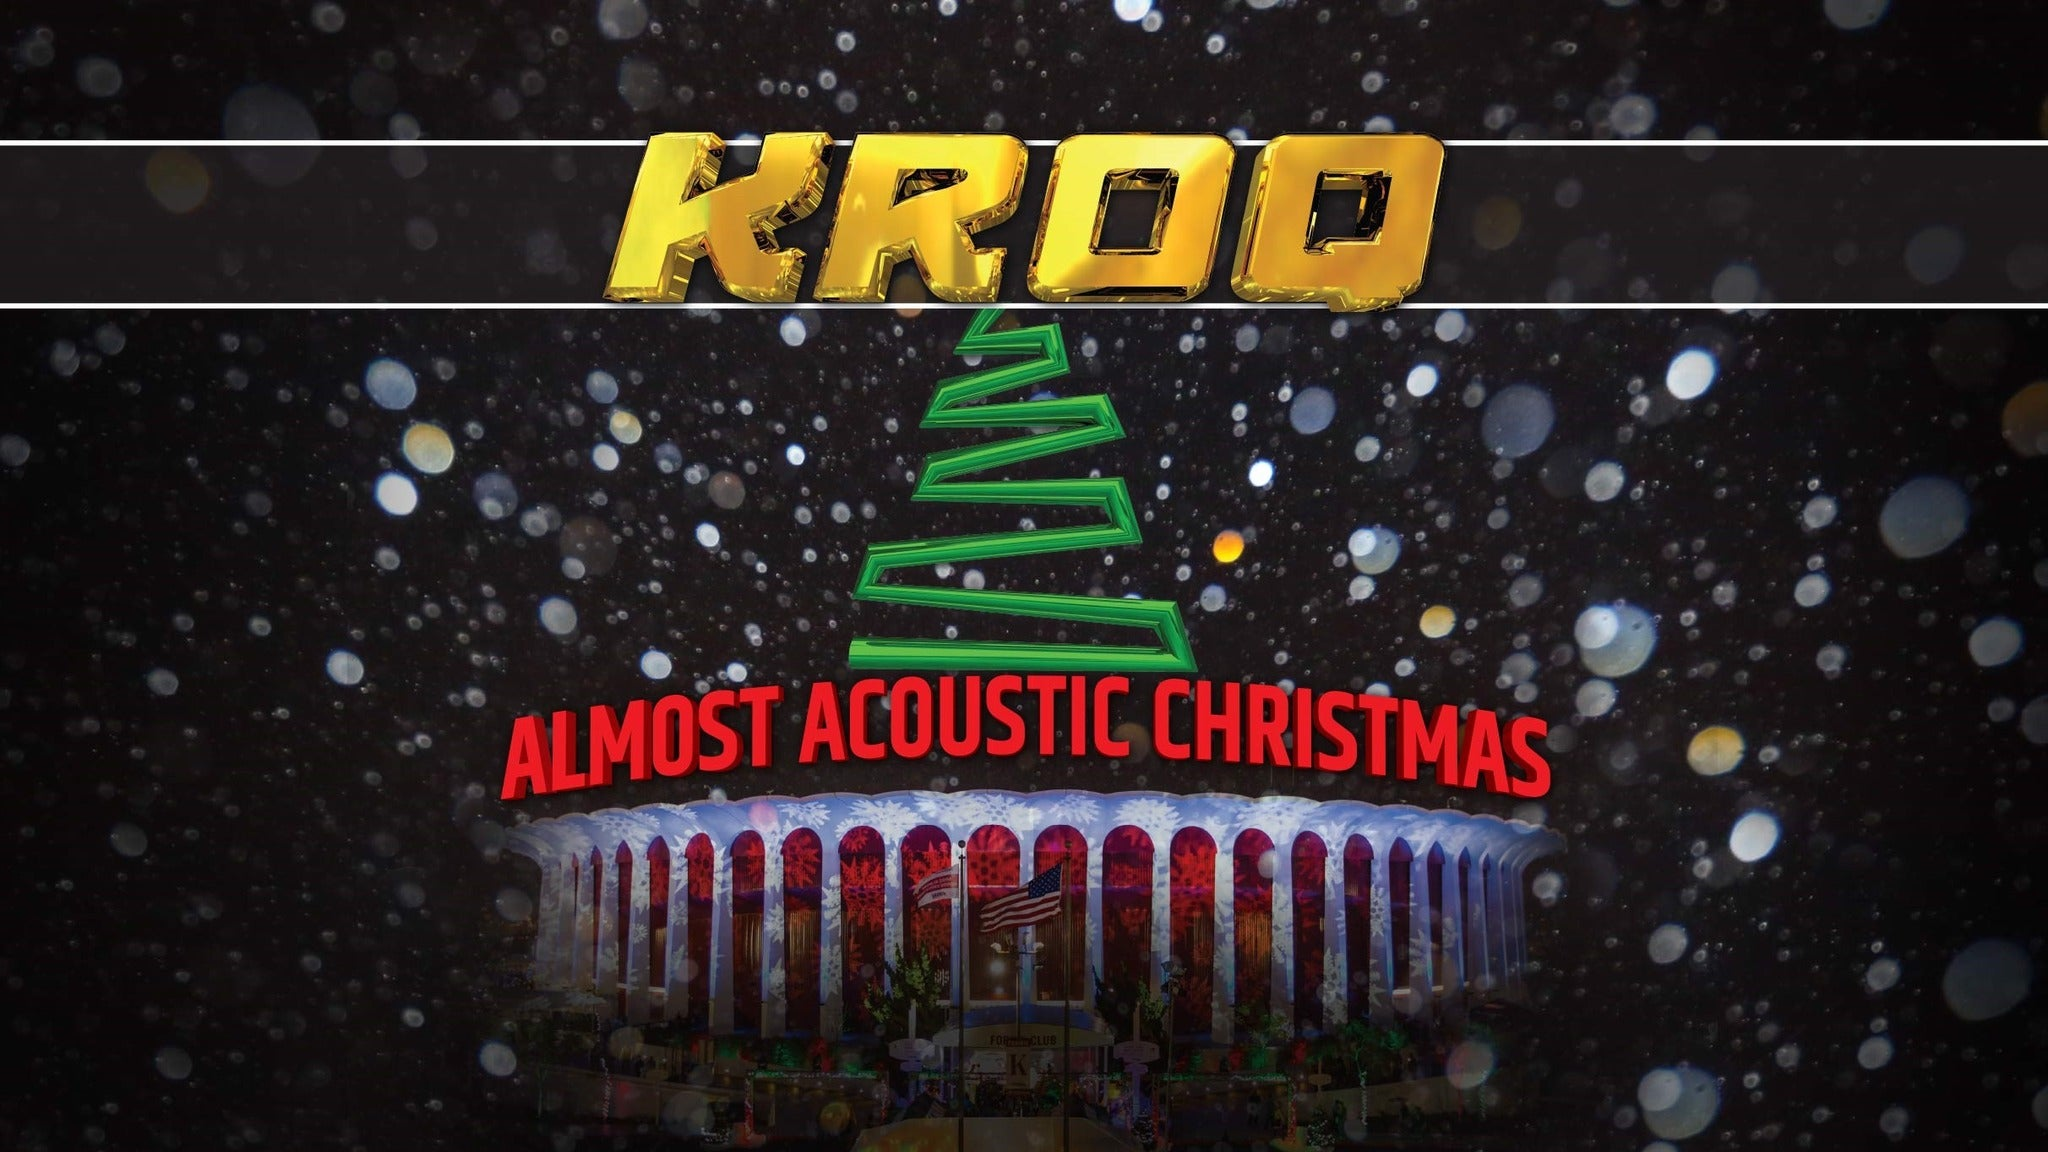 Kroq Almost Acoustic Christmas 2017 | Inglewood, CA | The Forum | December 10, 2017